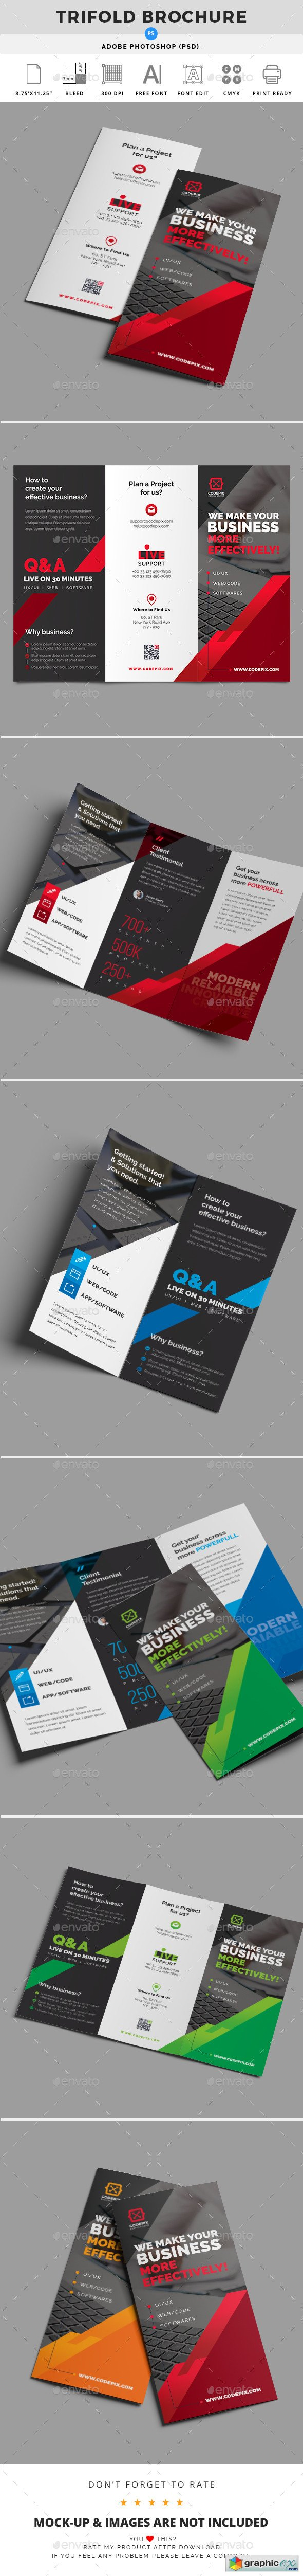 Trifold Brochure 20650324